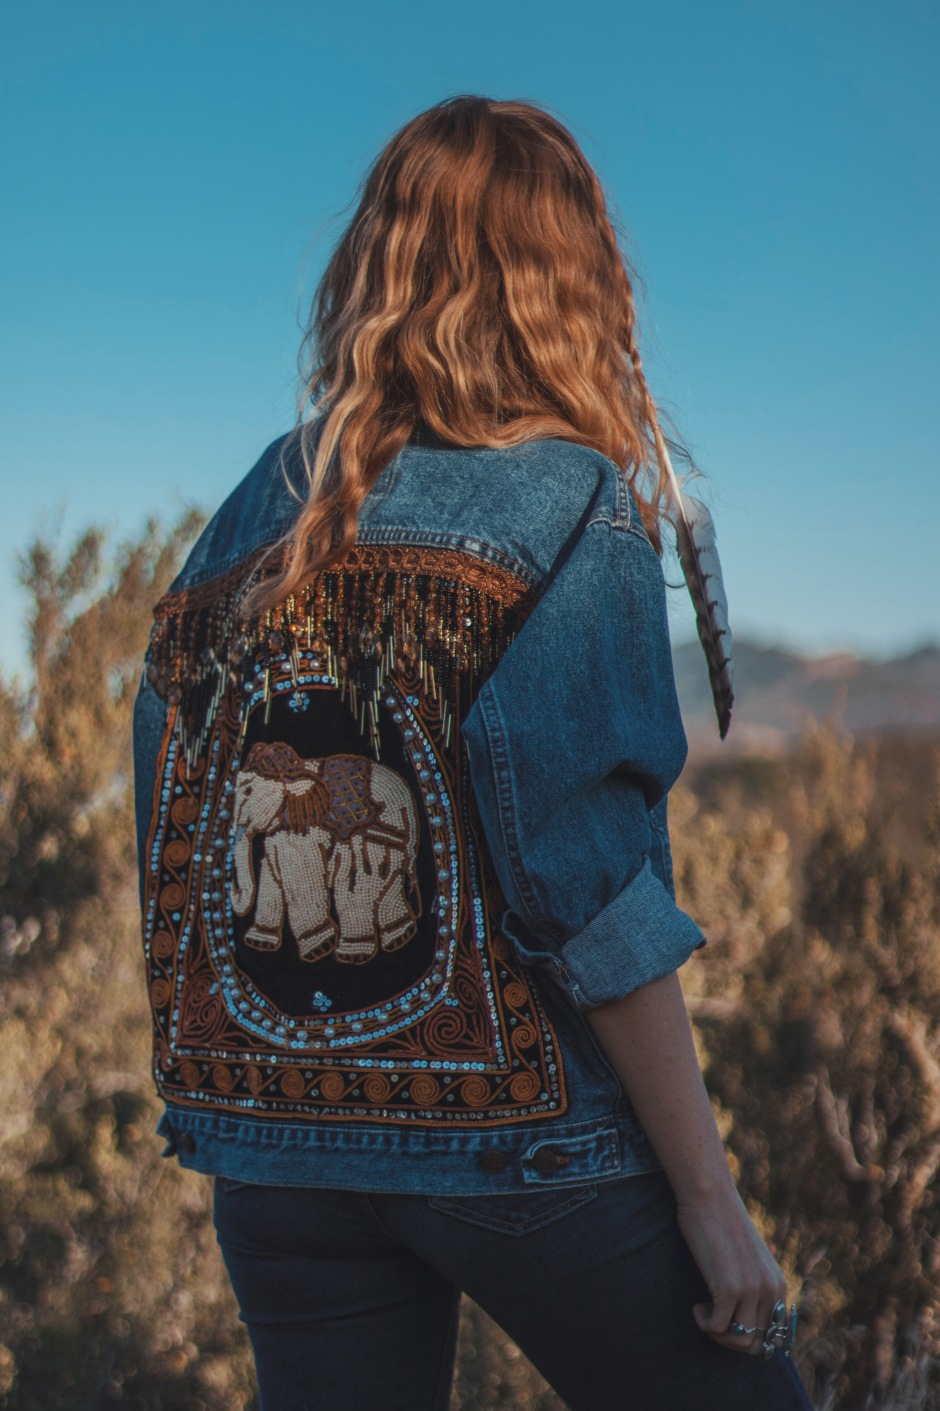 Embellished Elephant Jacket by Wild & Free Jewelry